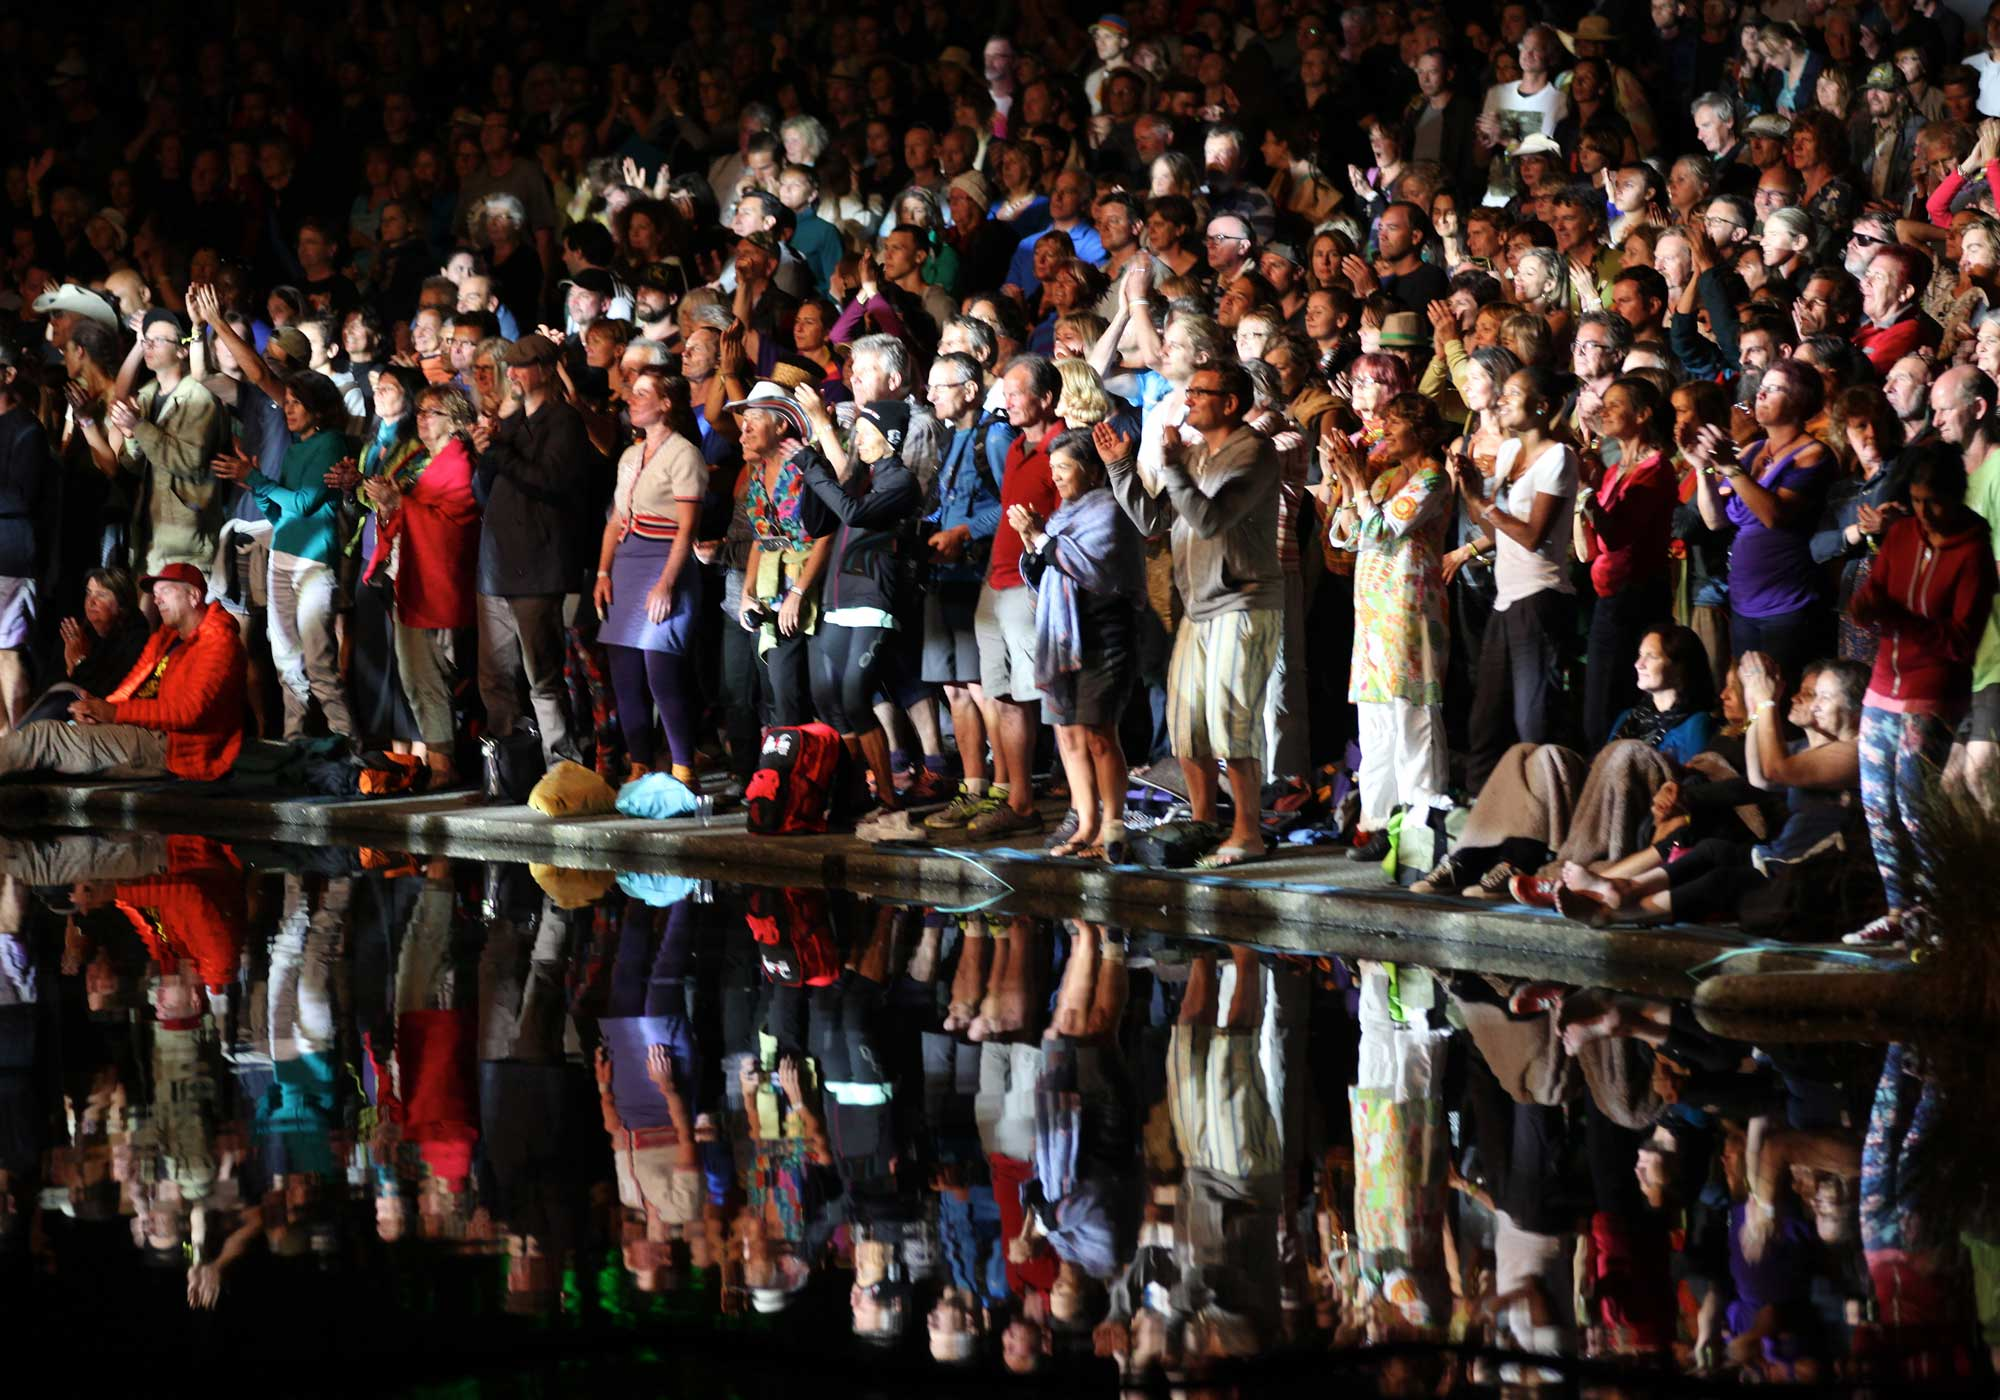 Audience reflected in the water at WOMAD